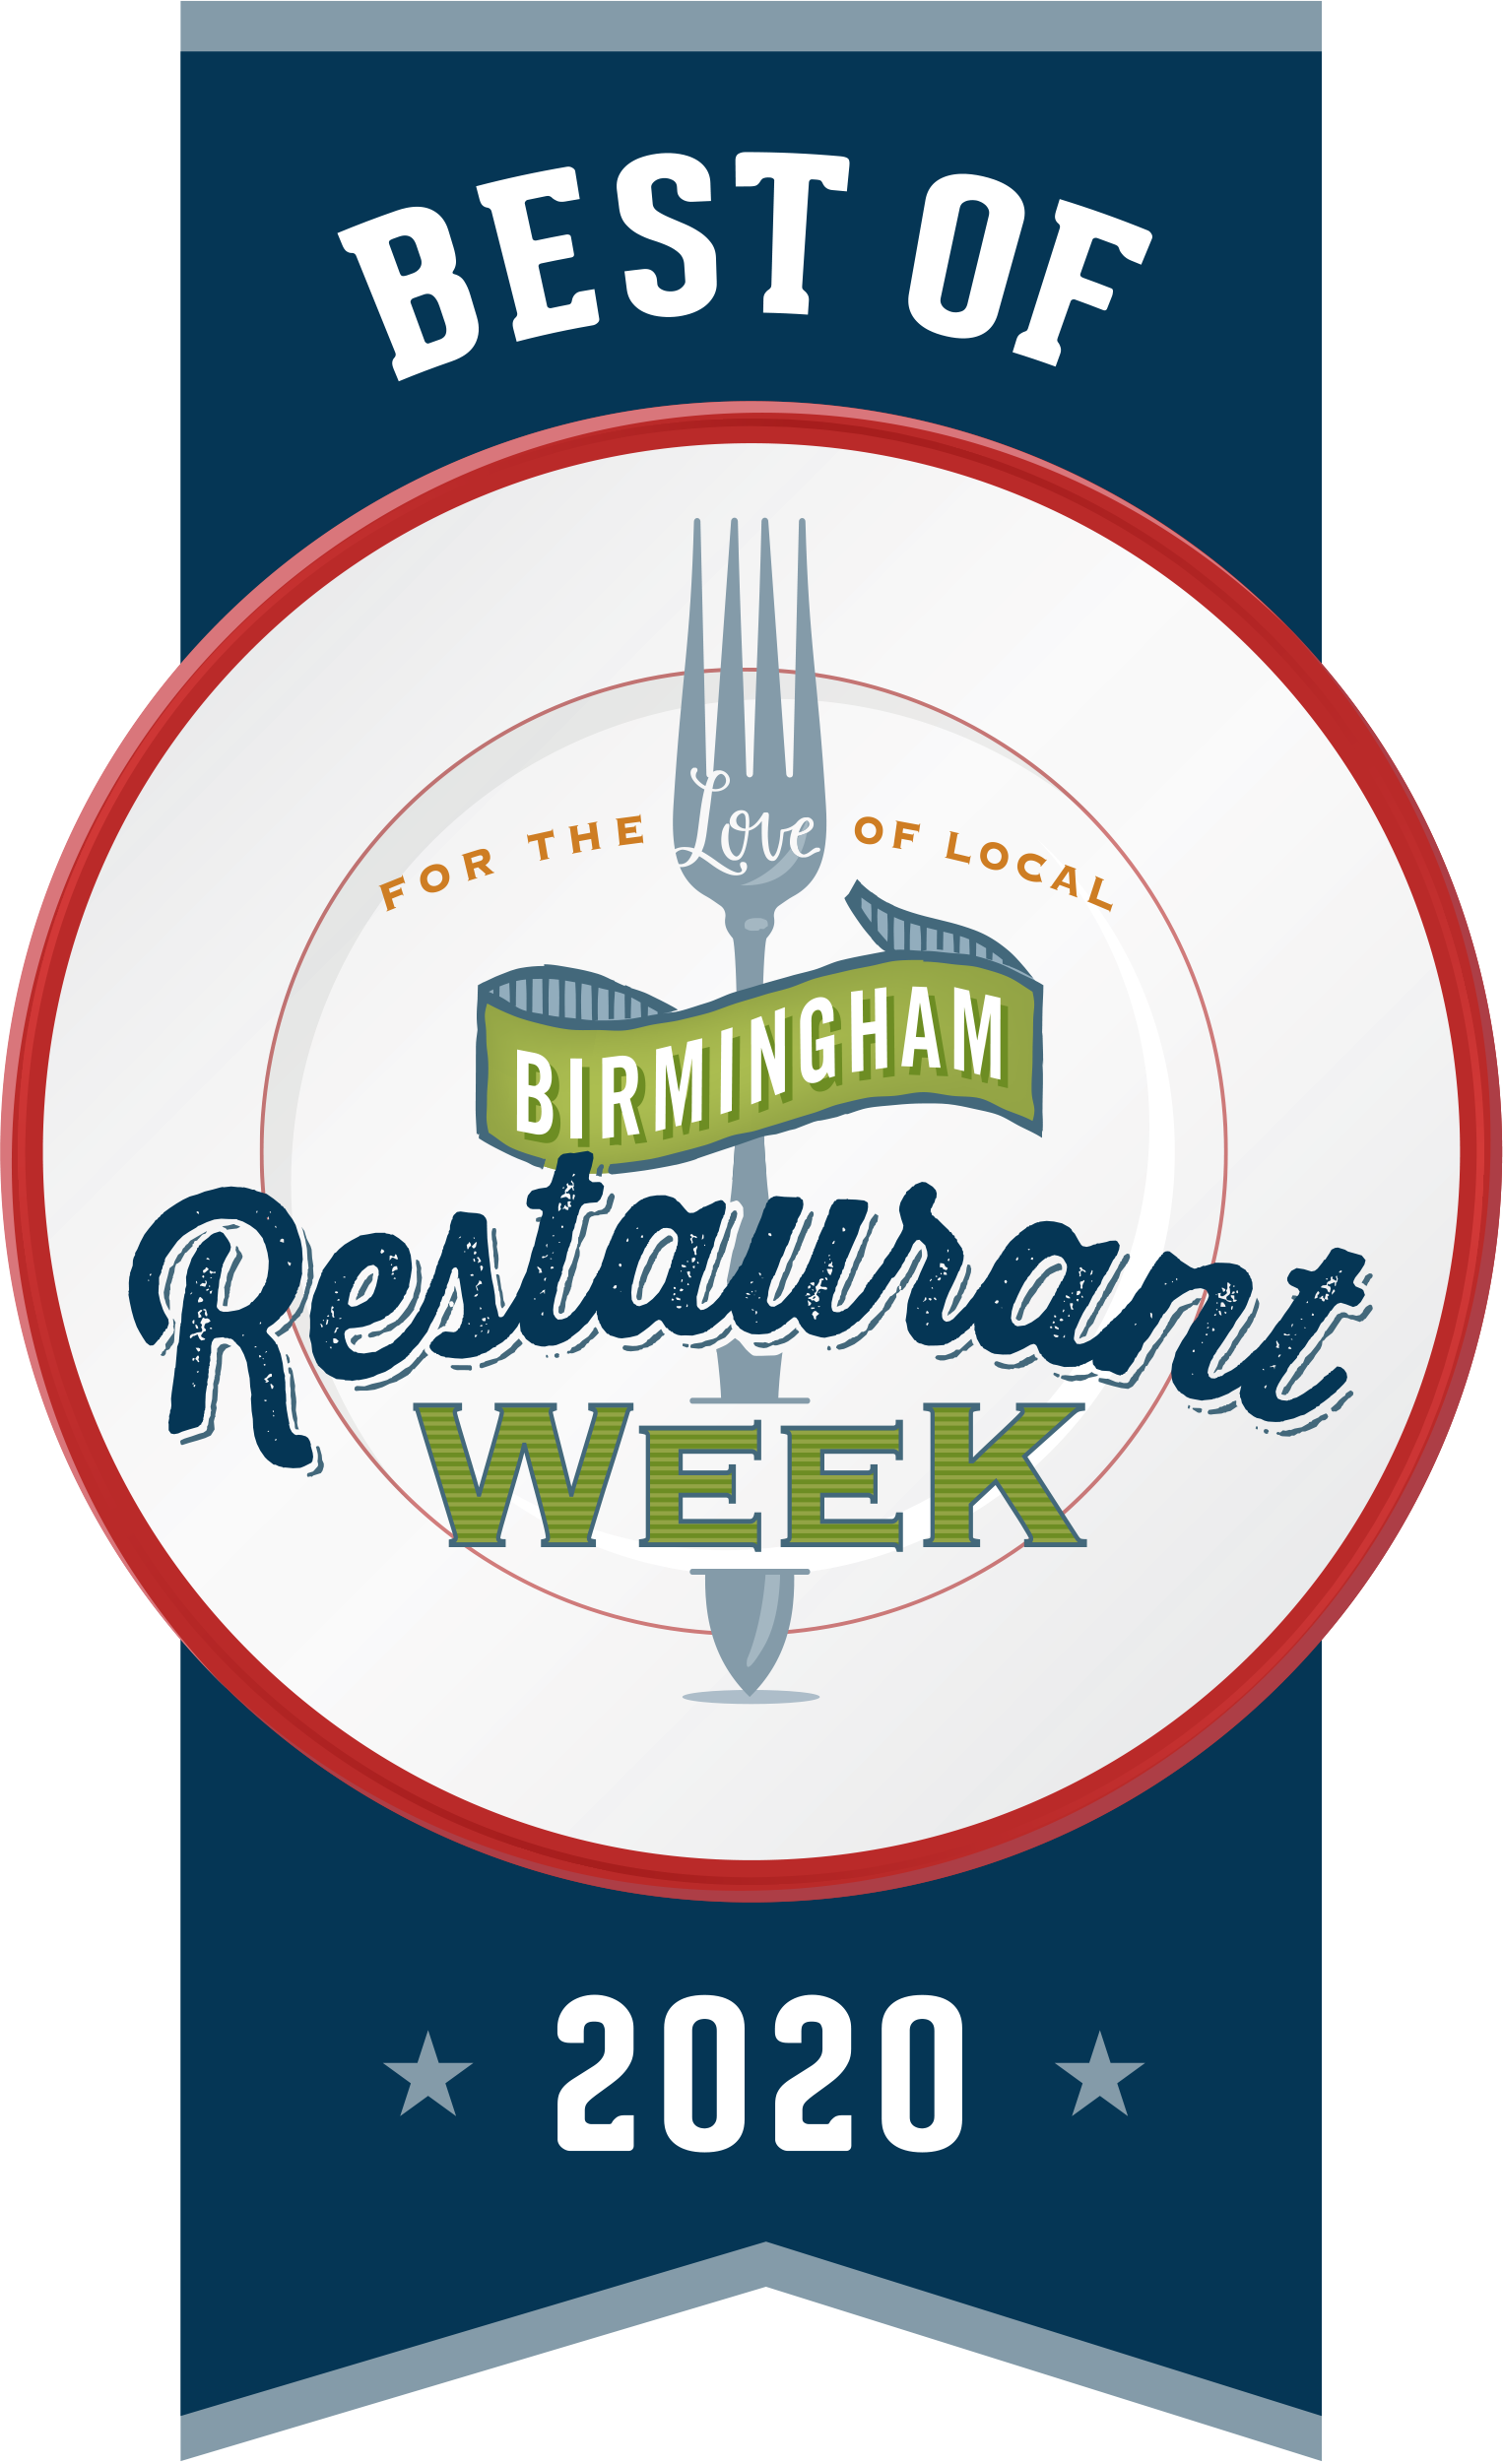 Best of Birmingham Restaurant Week 2020 banner